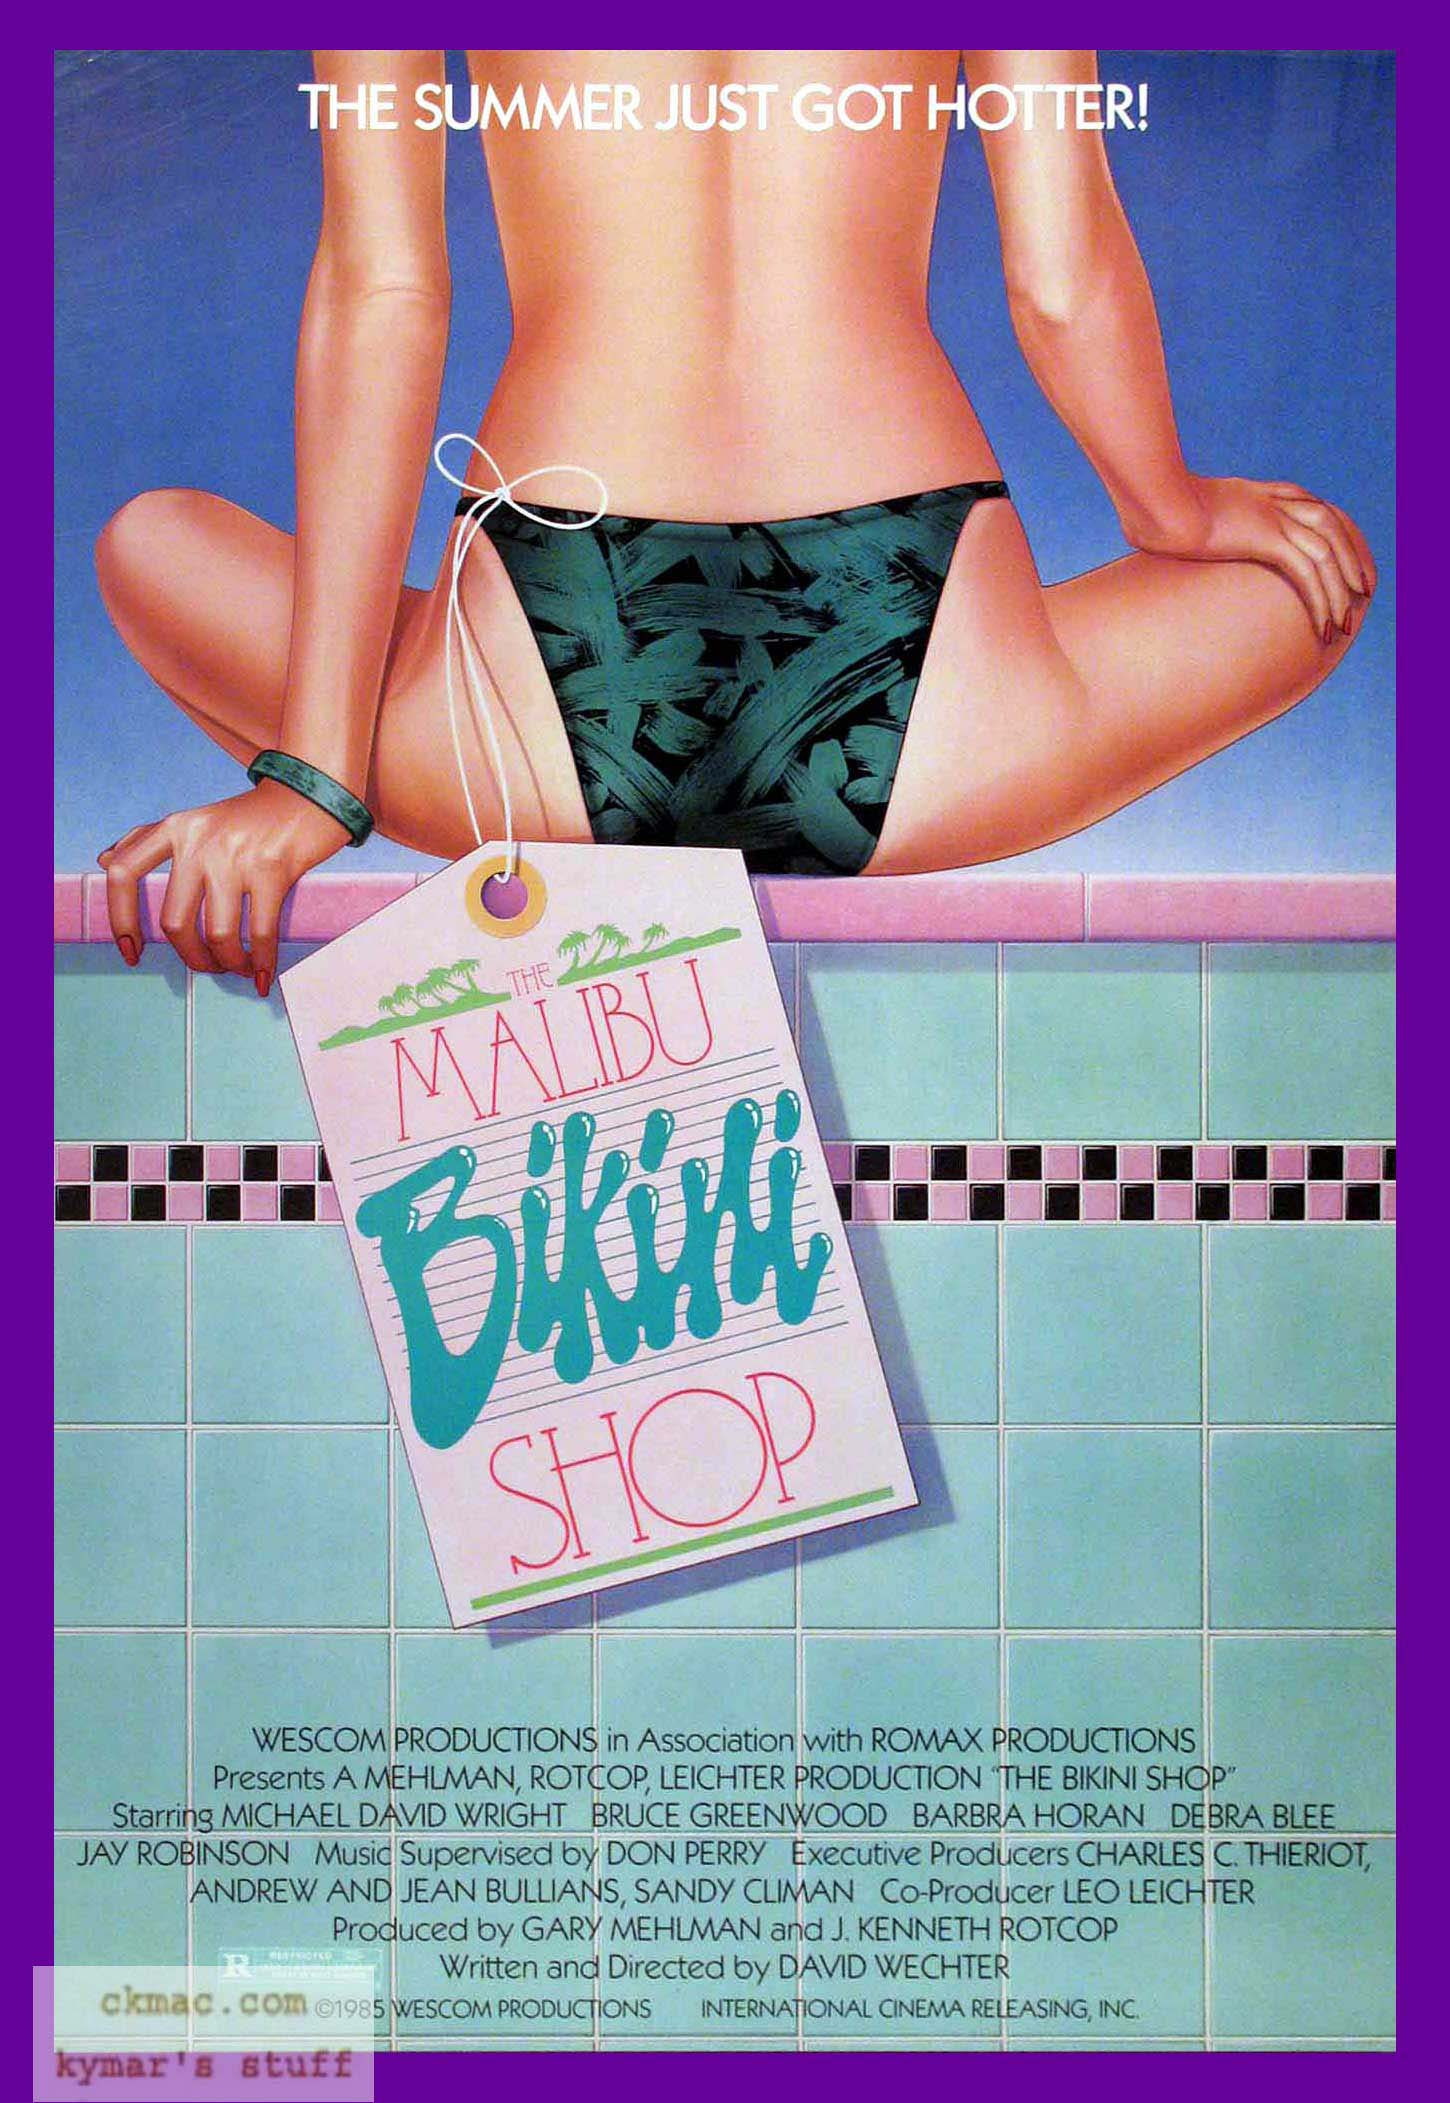 David Wechter's MALIBU BIKINI SHOP